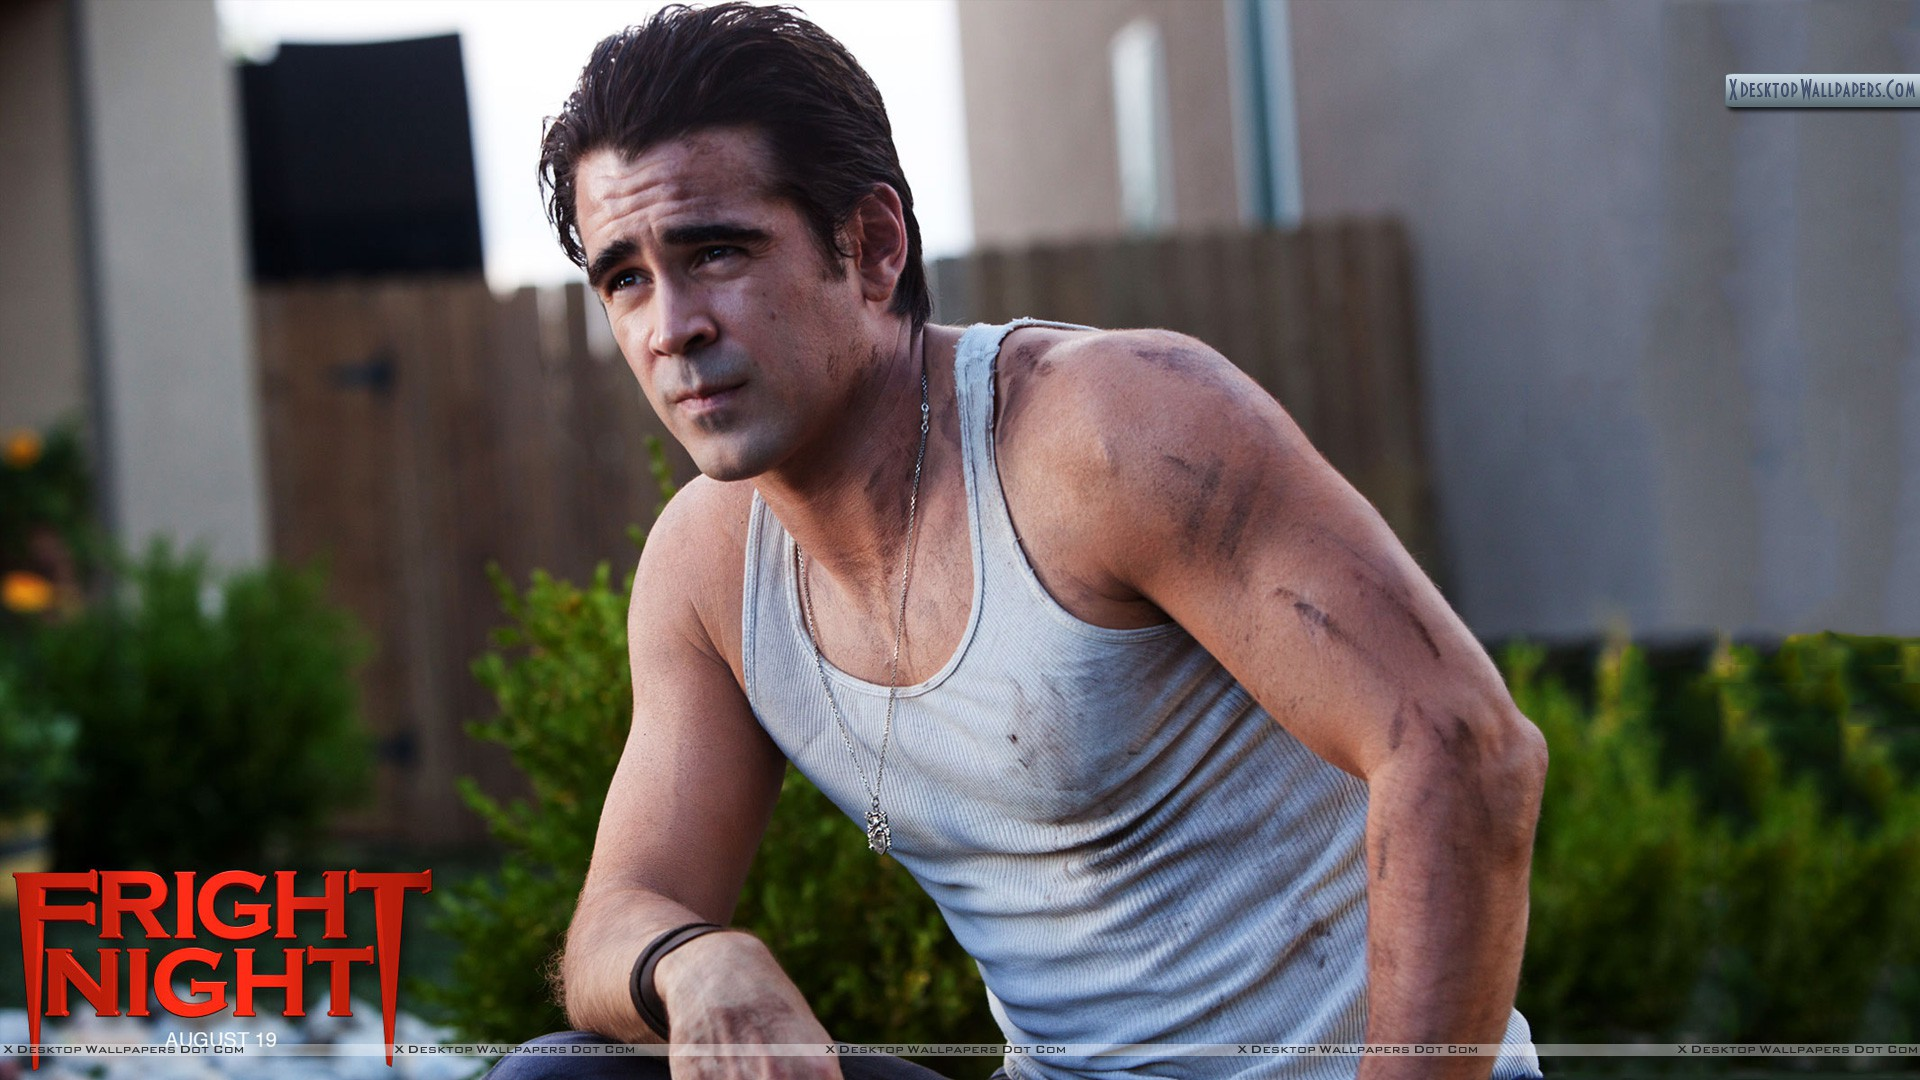 Fright Night Colin Farrell Sitting Outside House Wallpaper